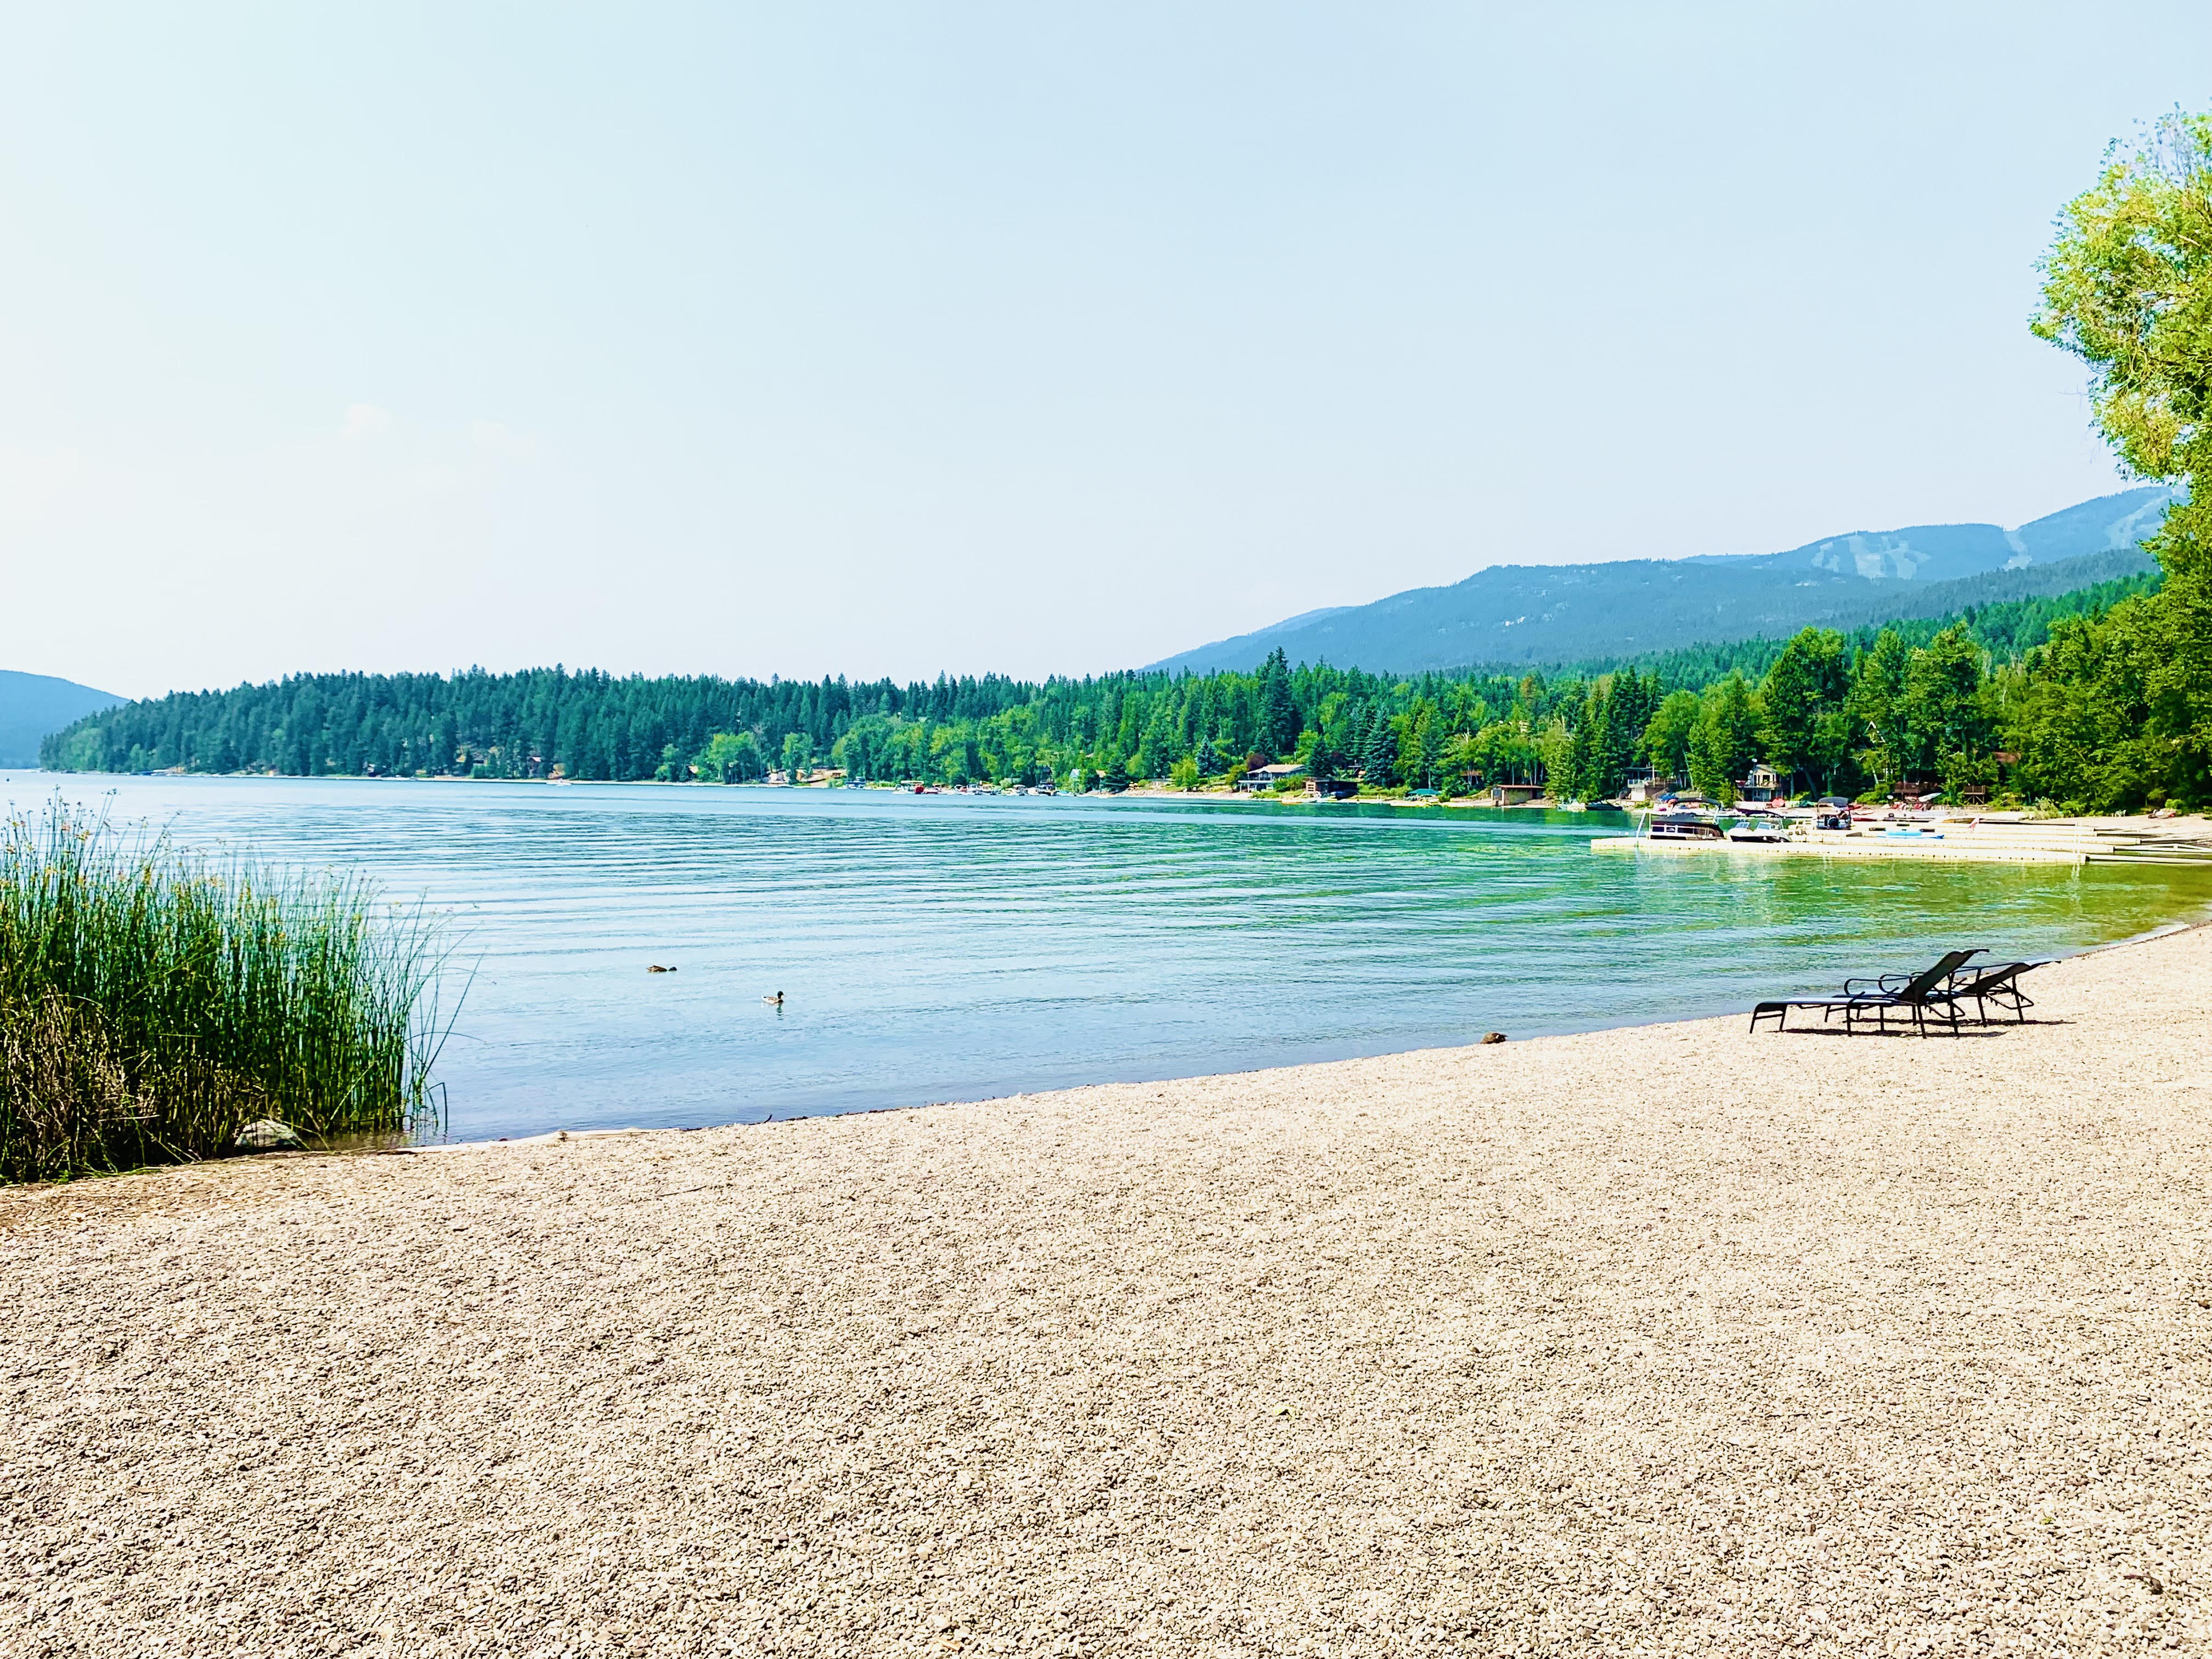 7 reasons to stay at The Lodge at Whitefish Lake, by Top US Family Travel Blog, Travel With A Plan!